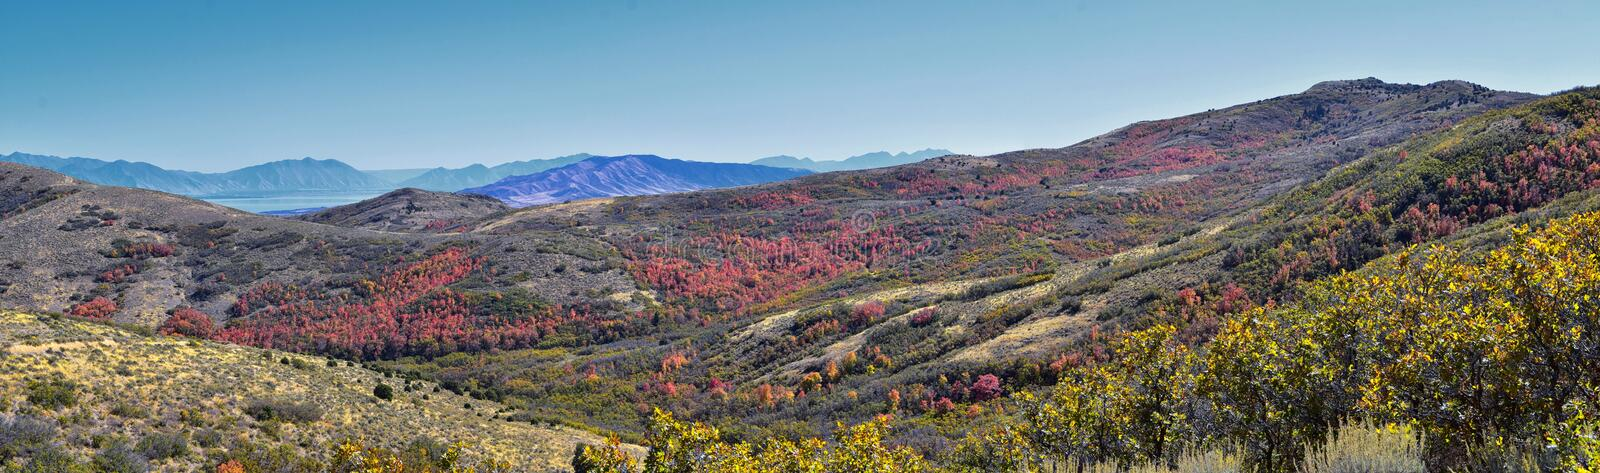 Views of Wasatch Front Rocky Mountains from the Oquirrh Mountains with fall leaves, Hiking in Yellow Fork trail Rose Canyon Utah stock image